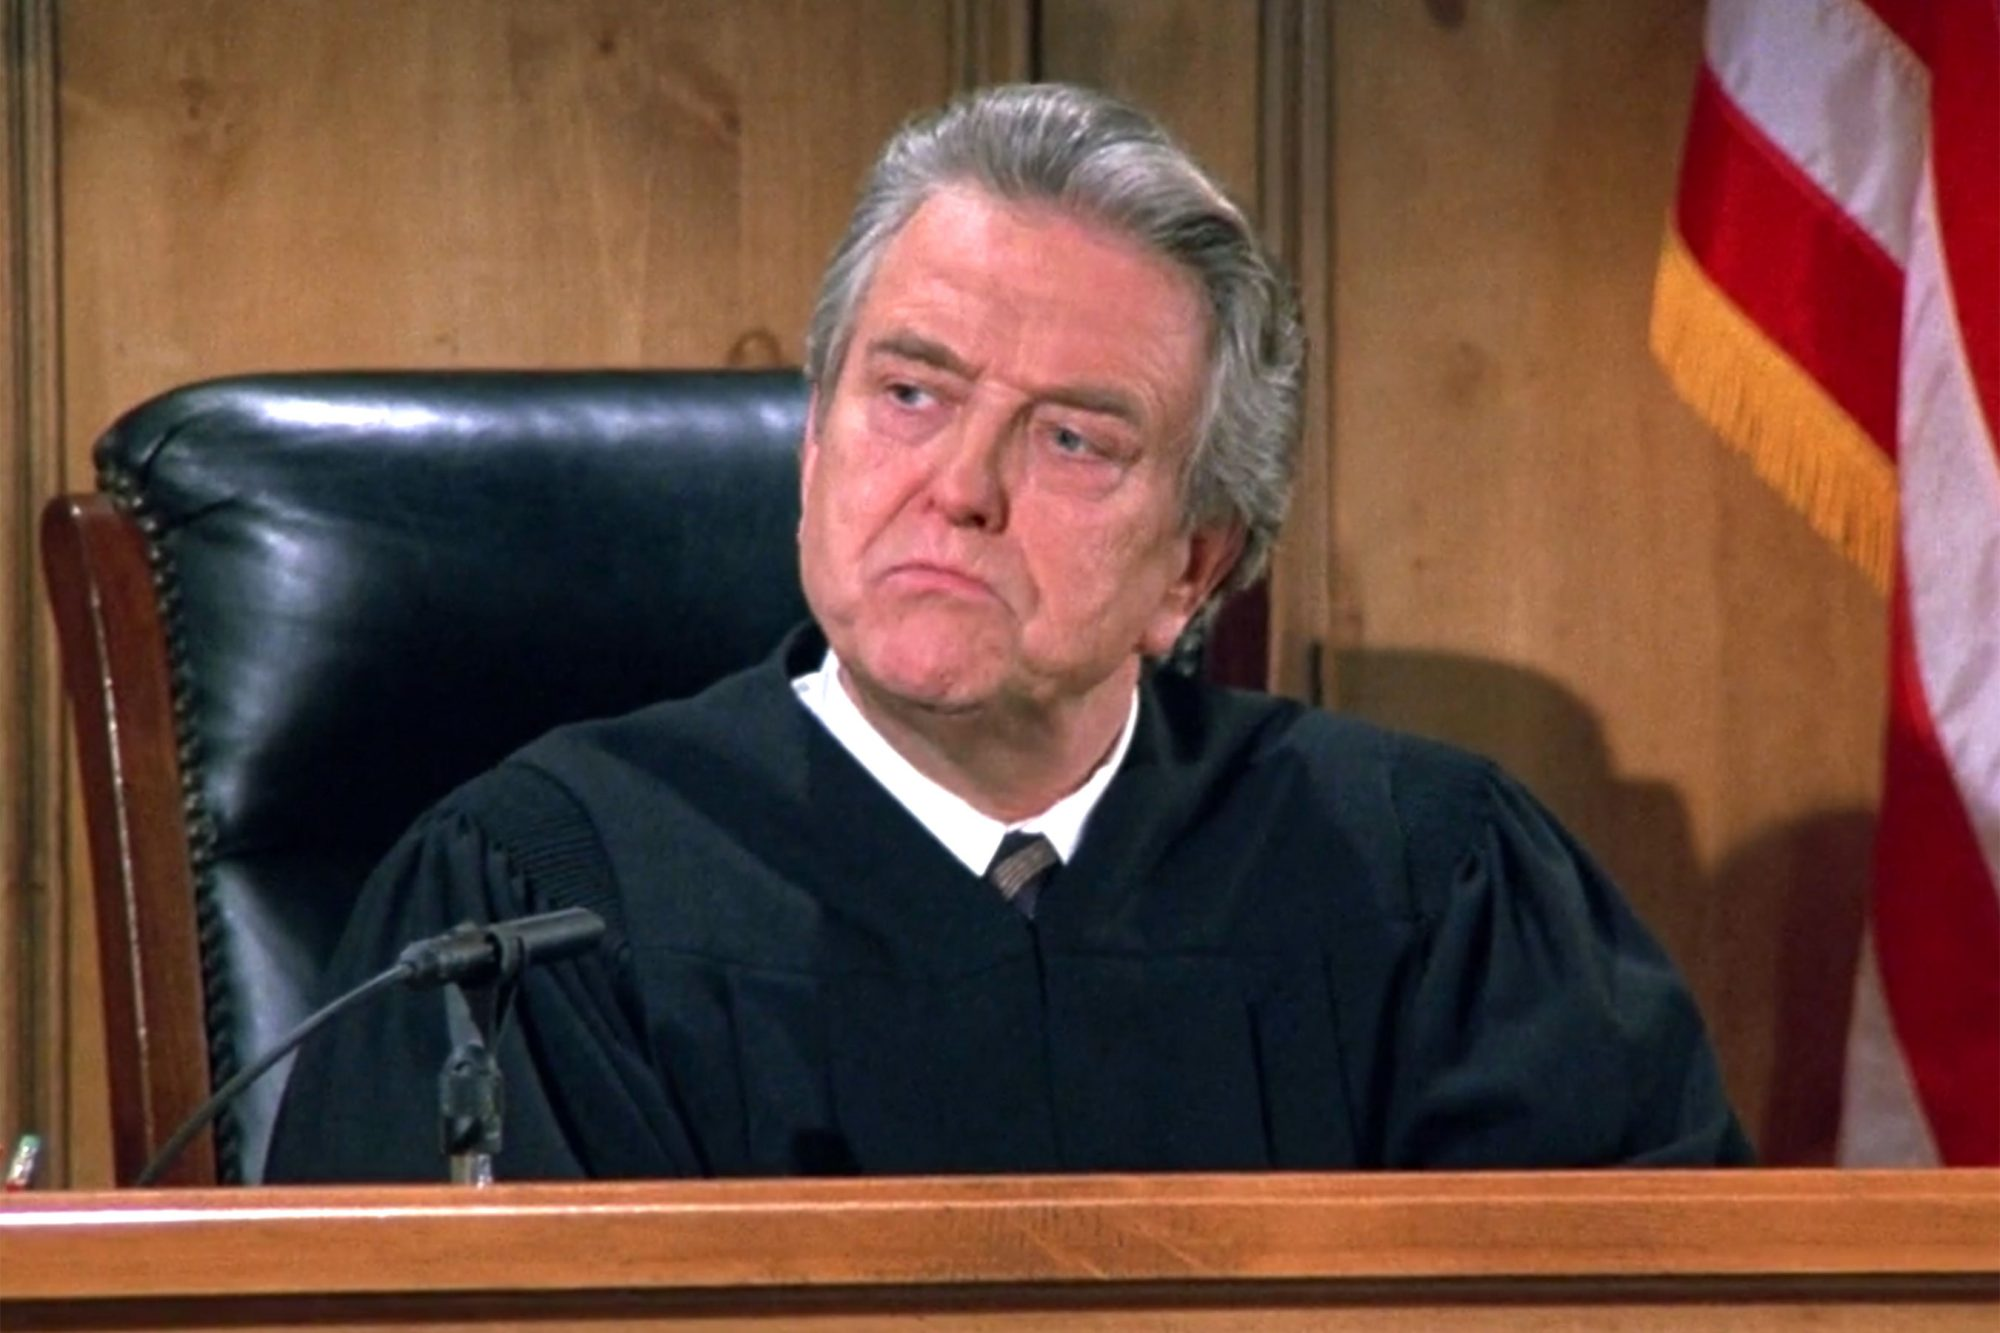 3.Stanley Anderson as Judge Arthur Vandelay (1)